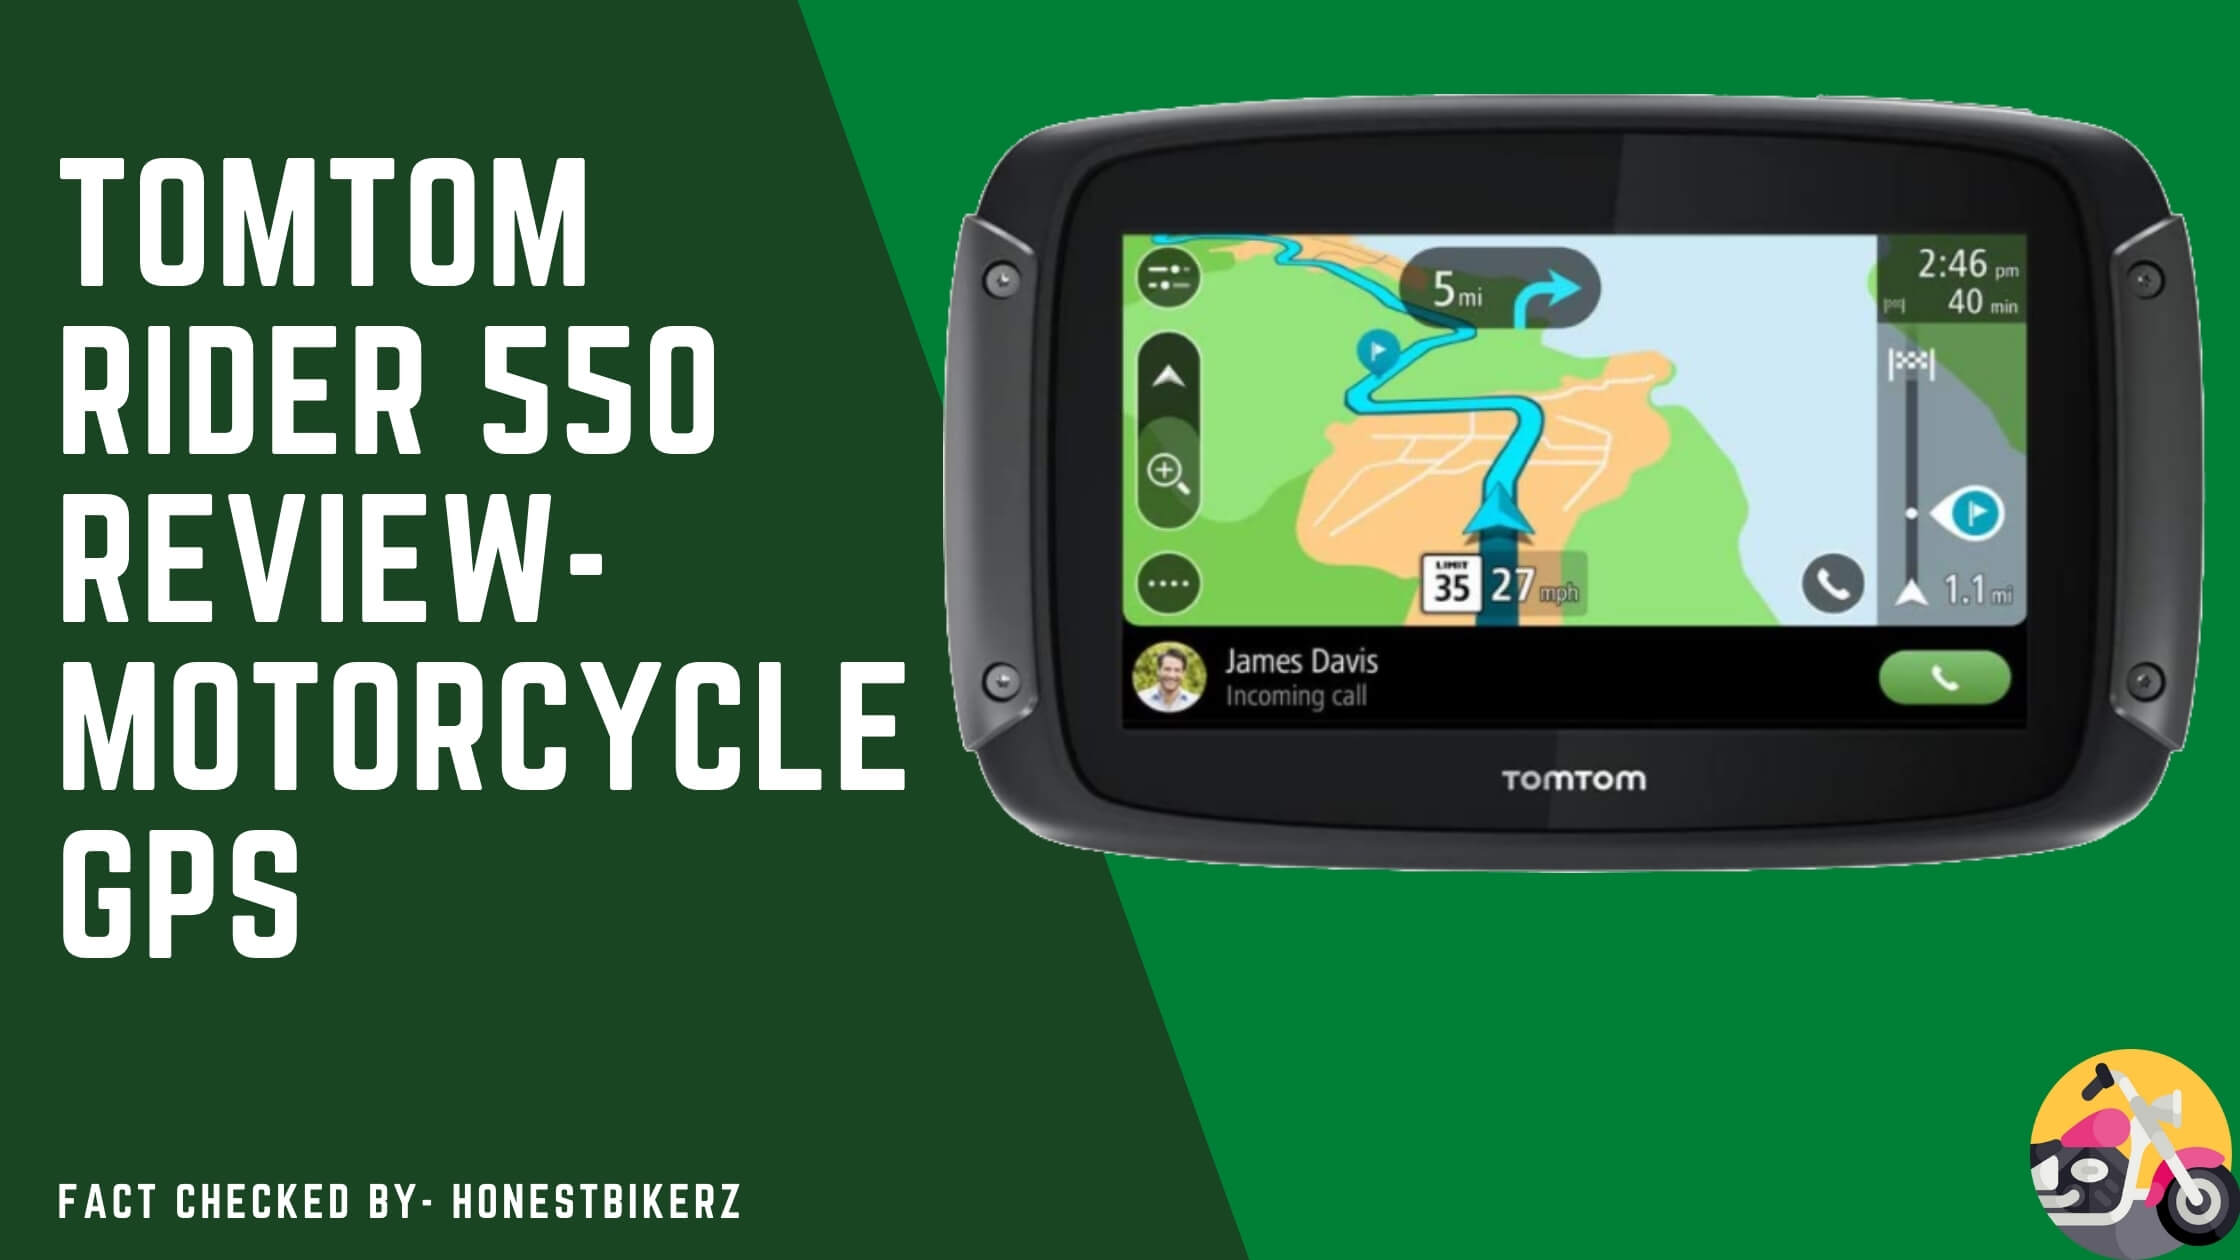 Tomtom Rider 550 Review- Best Motorcycle GPS